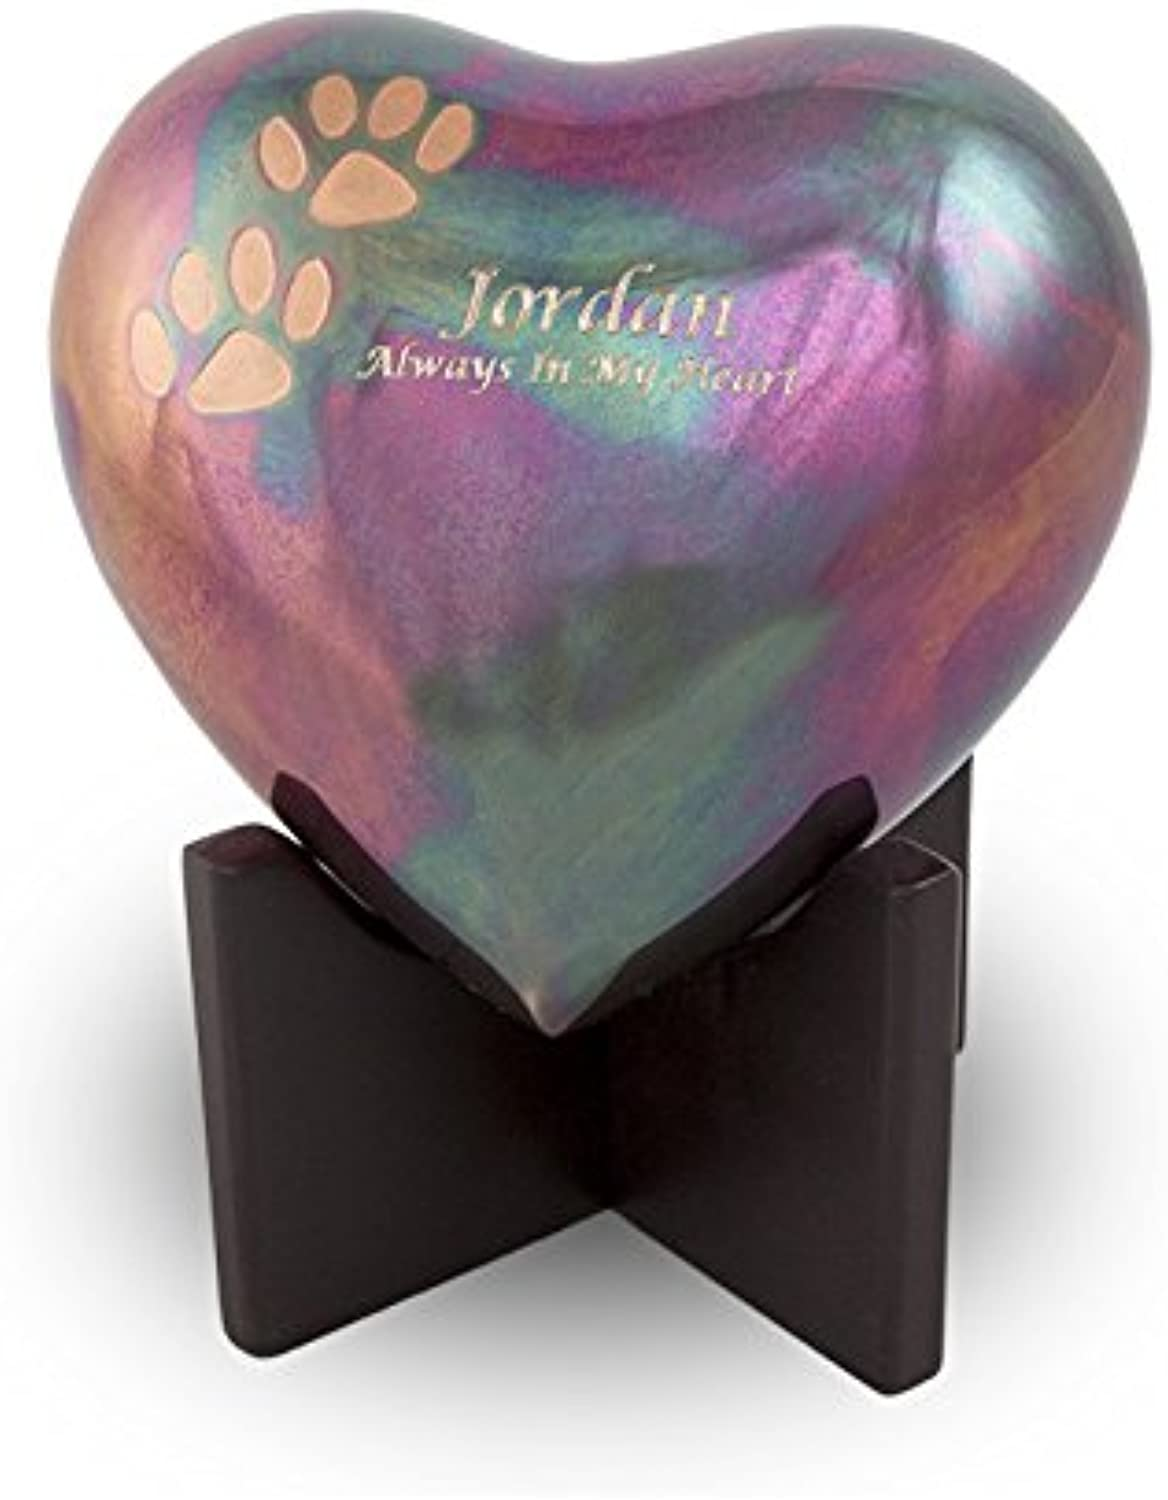 OneWorld Memorials Arielle Raku Finish with Paw Prints Bronze Heart Pet Urn  Small  Holds Up to 20 Cubic Inches of Ashes  Raku bluee Pet Cremation Urn for Ashes  Engraving Sold Separately